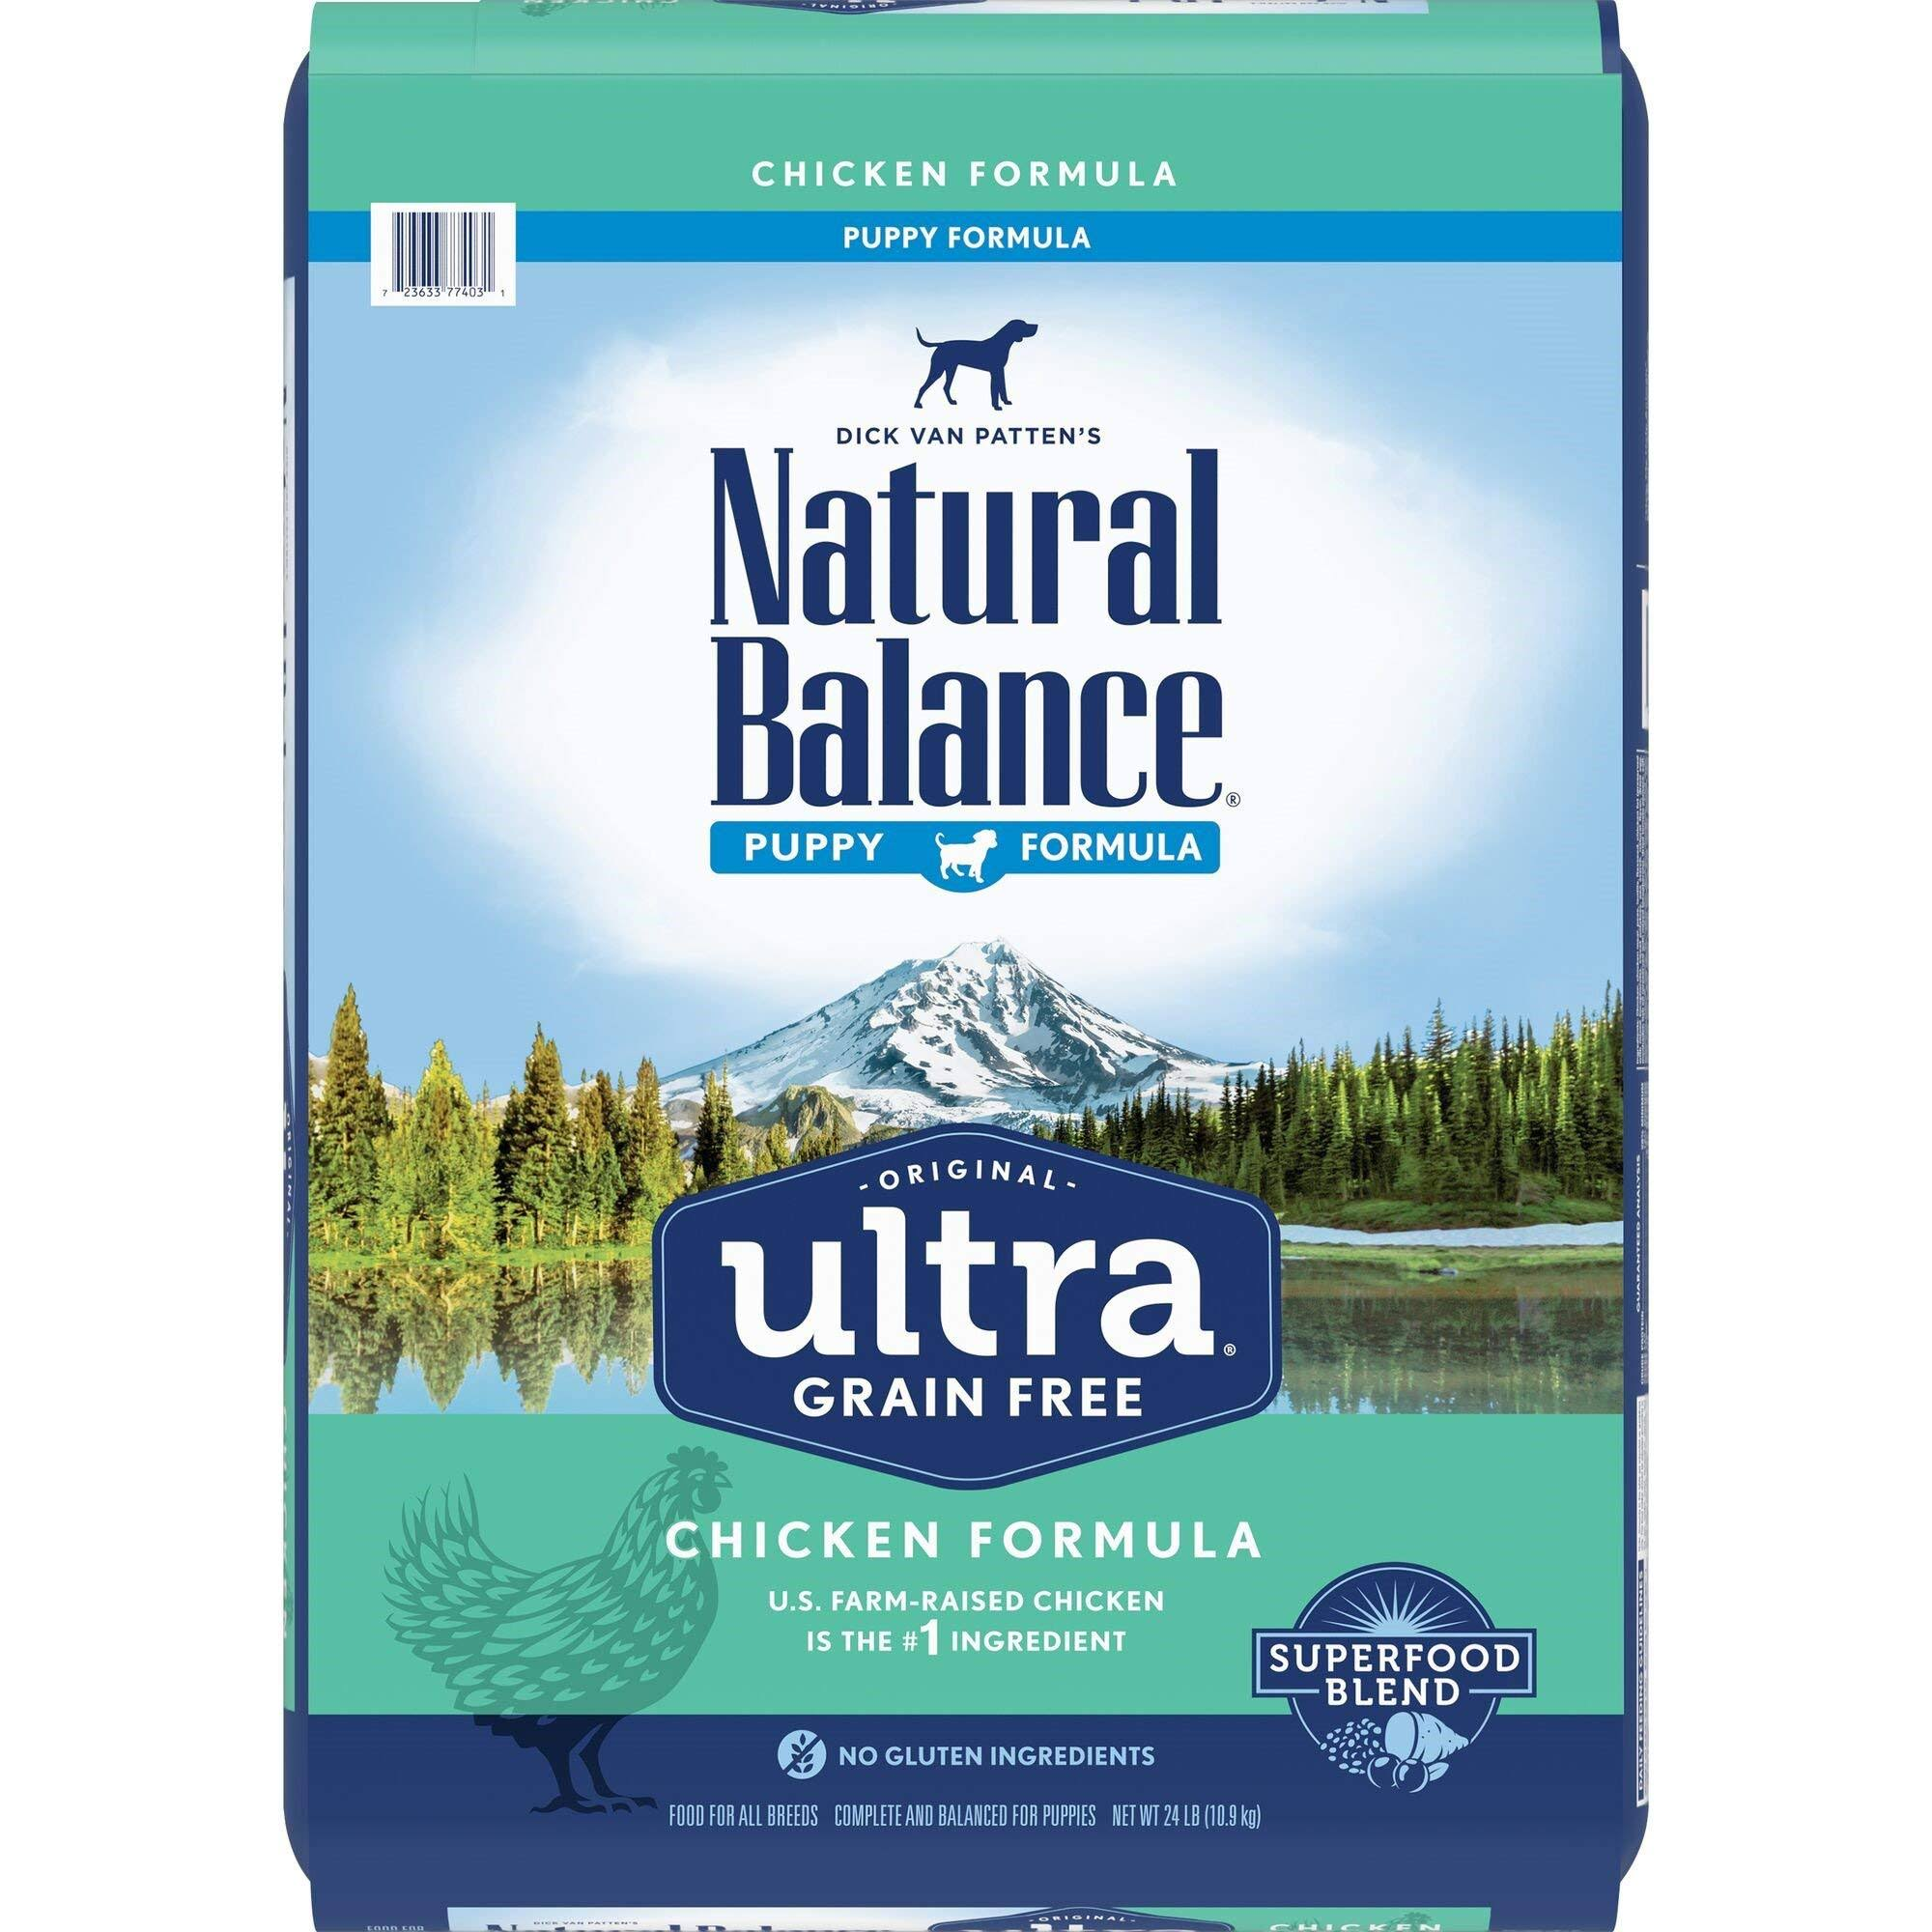 Natural Balance Original Ultra Grain Free Puppy Recipe with Chicken Dry Dog Food 24-lb